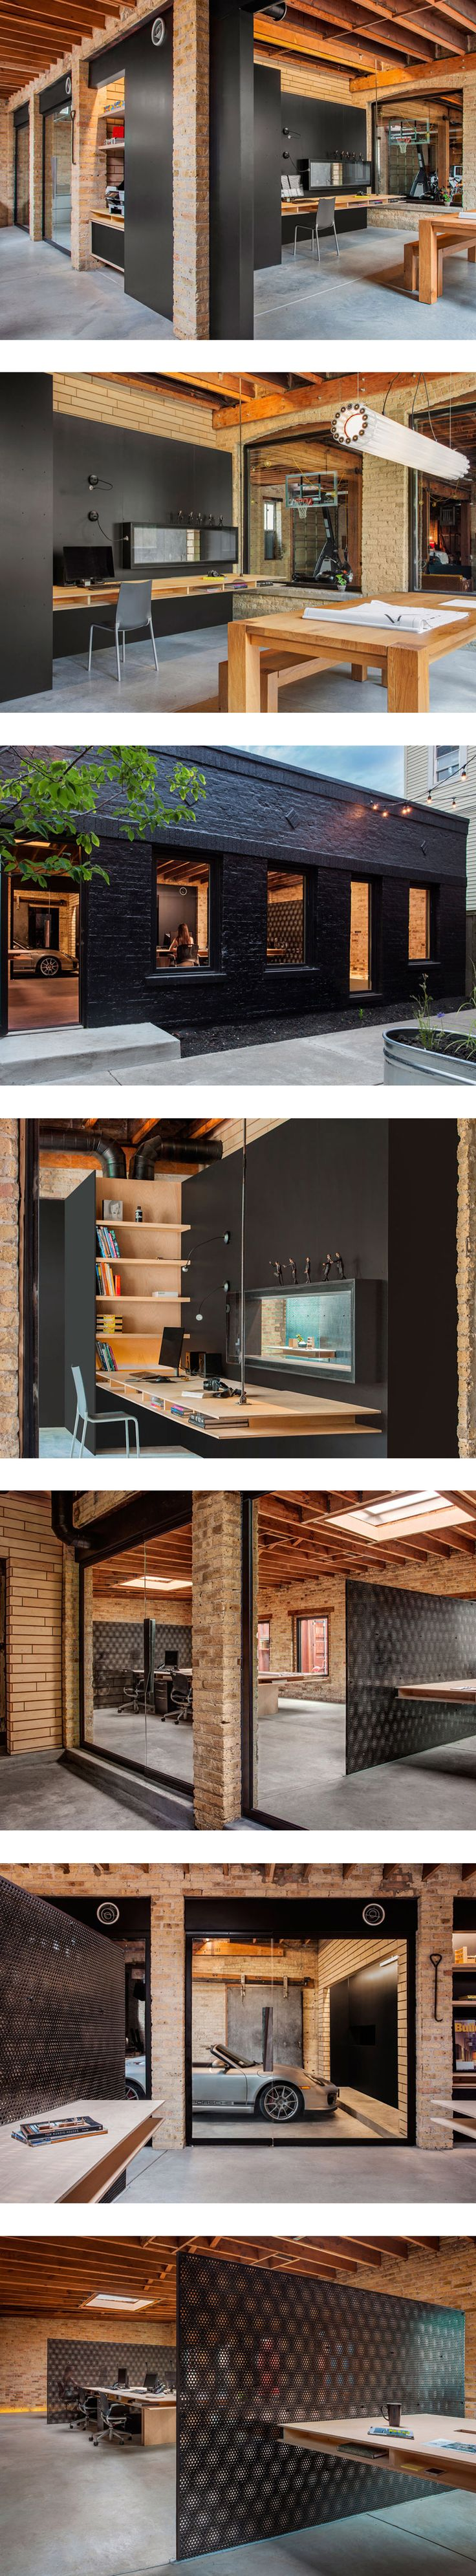 best images about coworkimg on pinterest offices open office